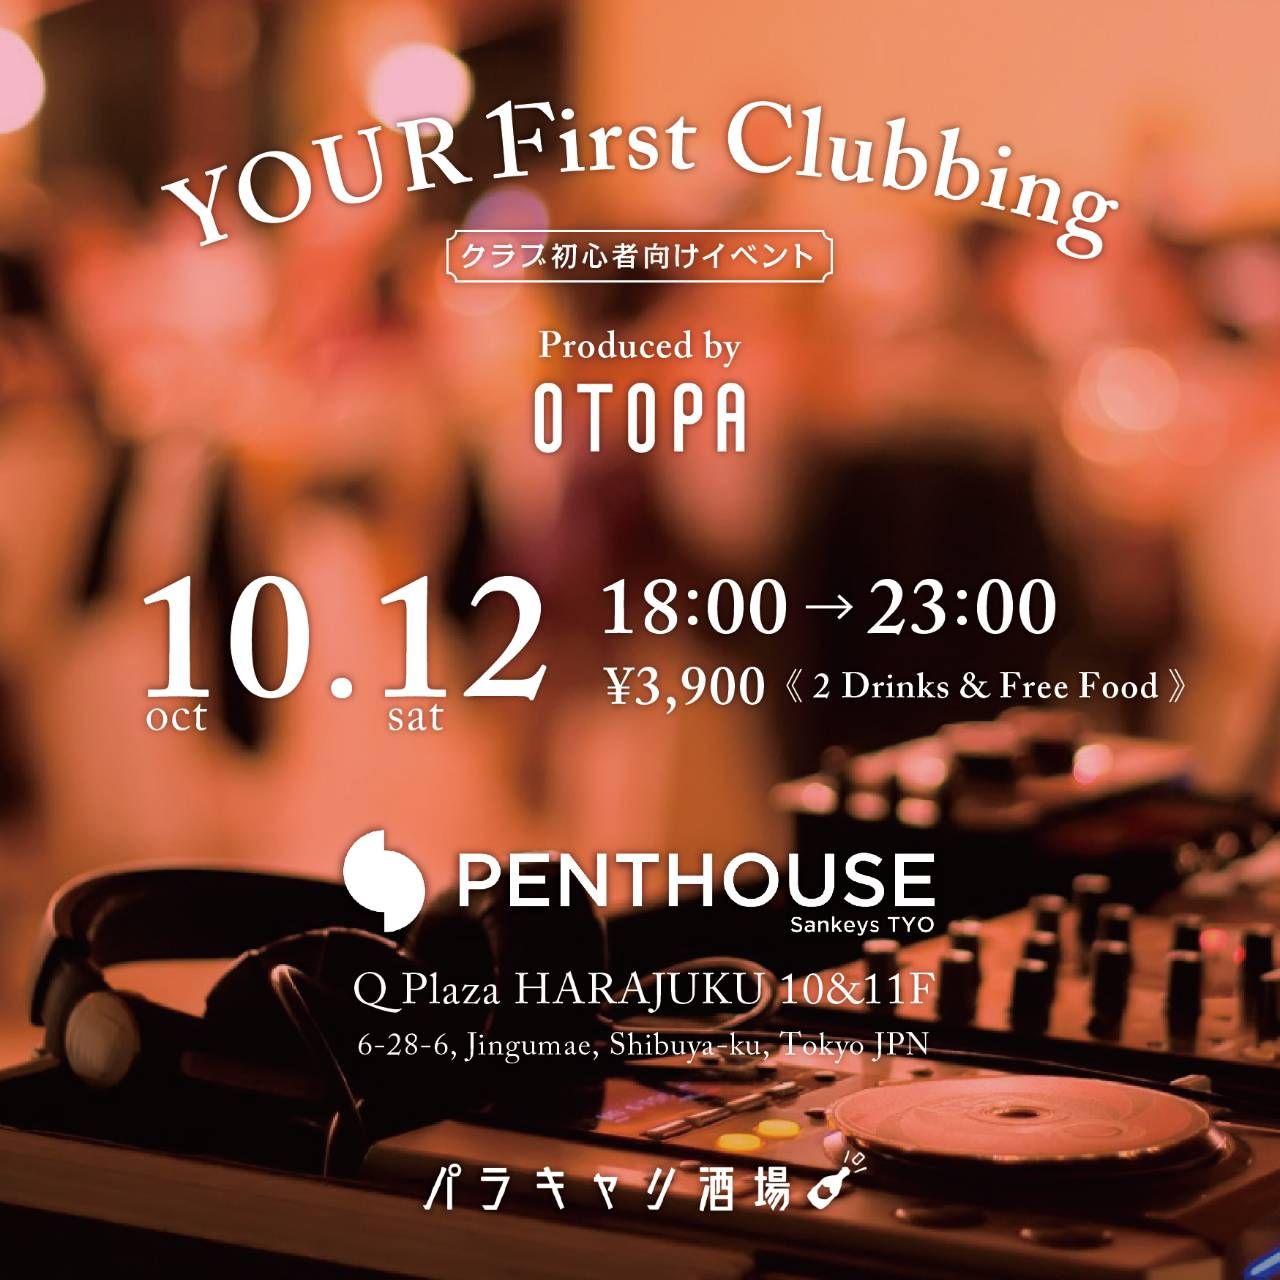 YOUR First Clubbing Produced by OTOPA